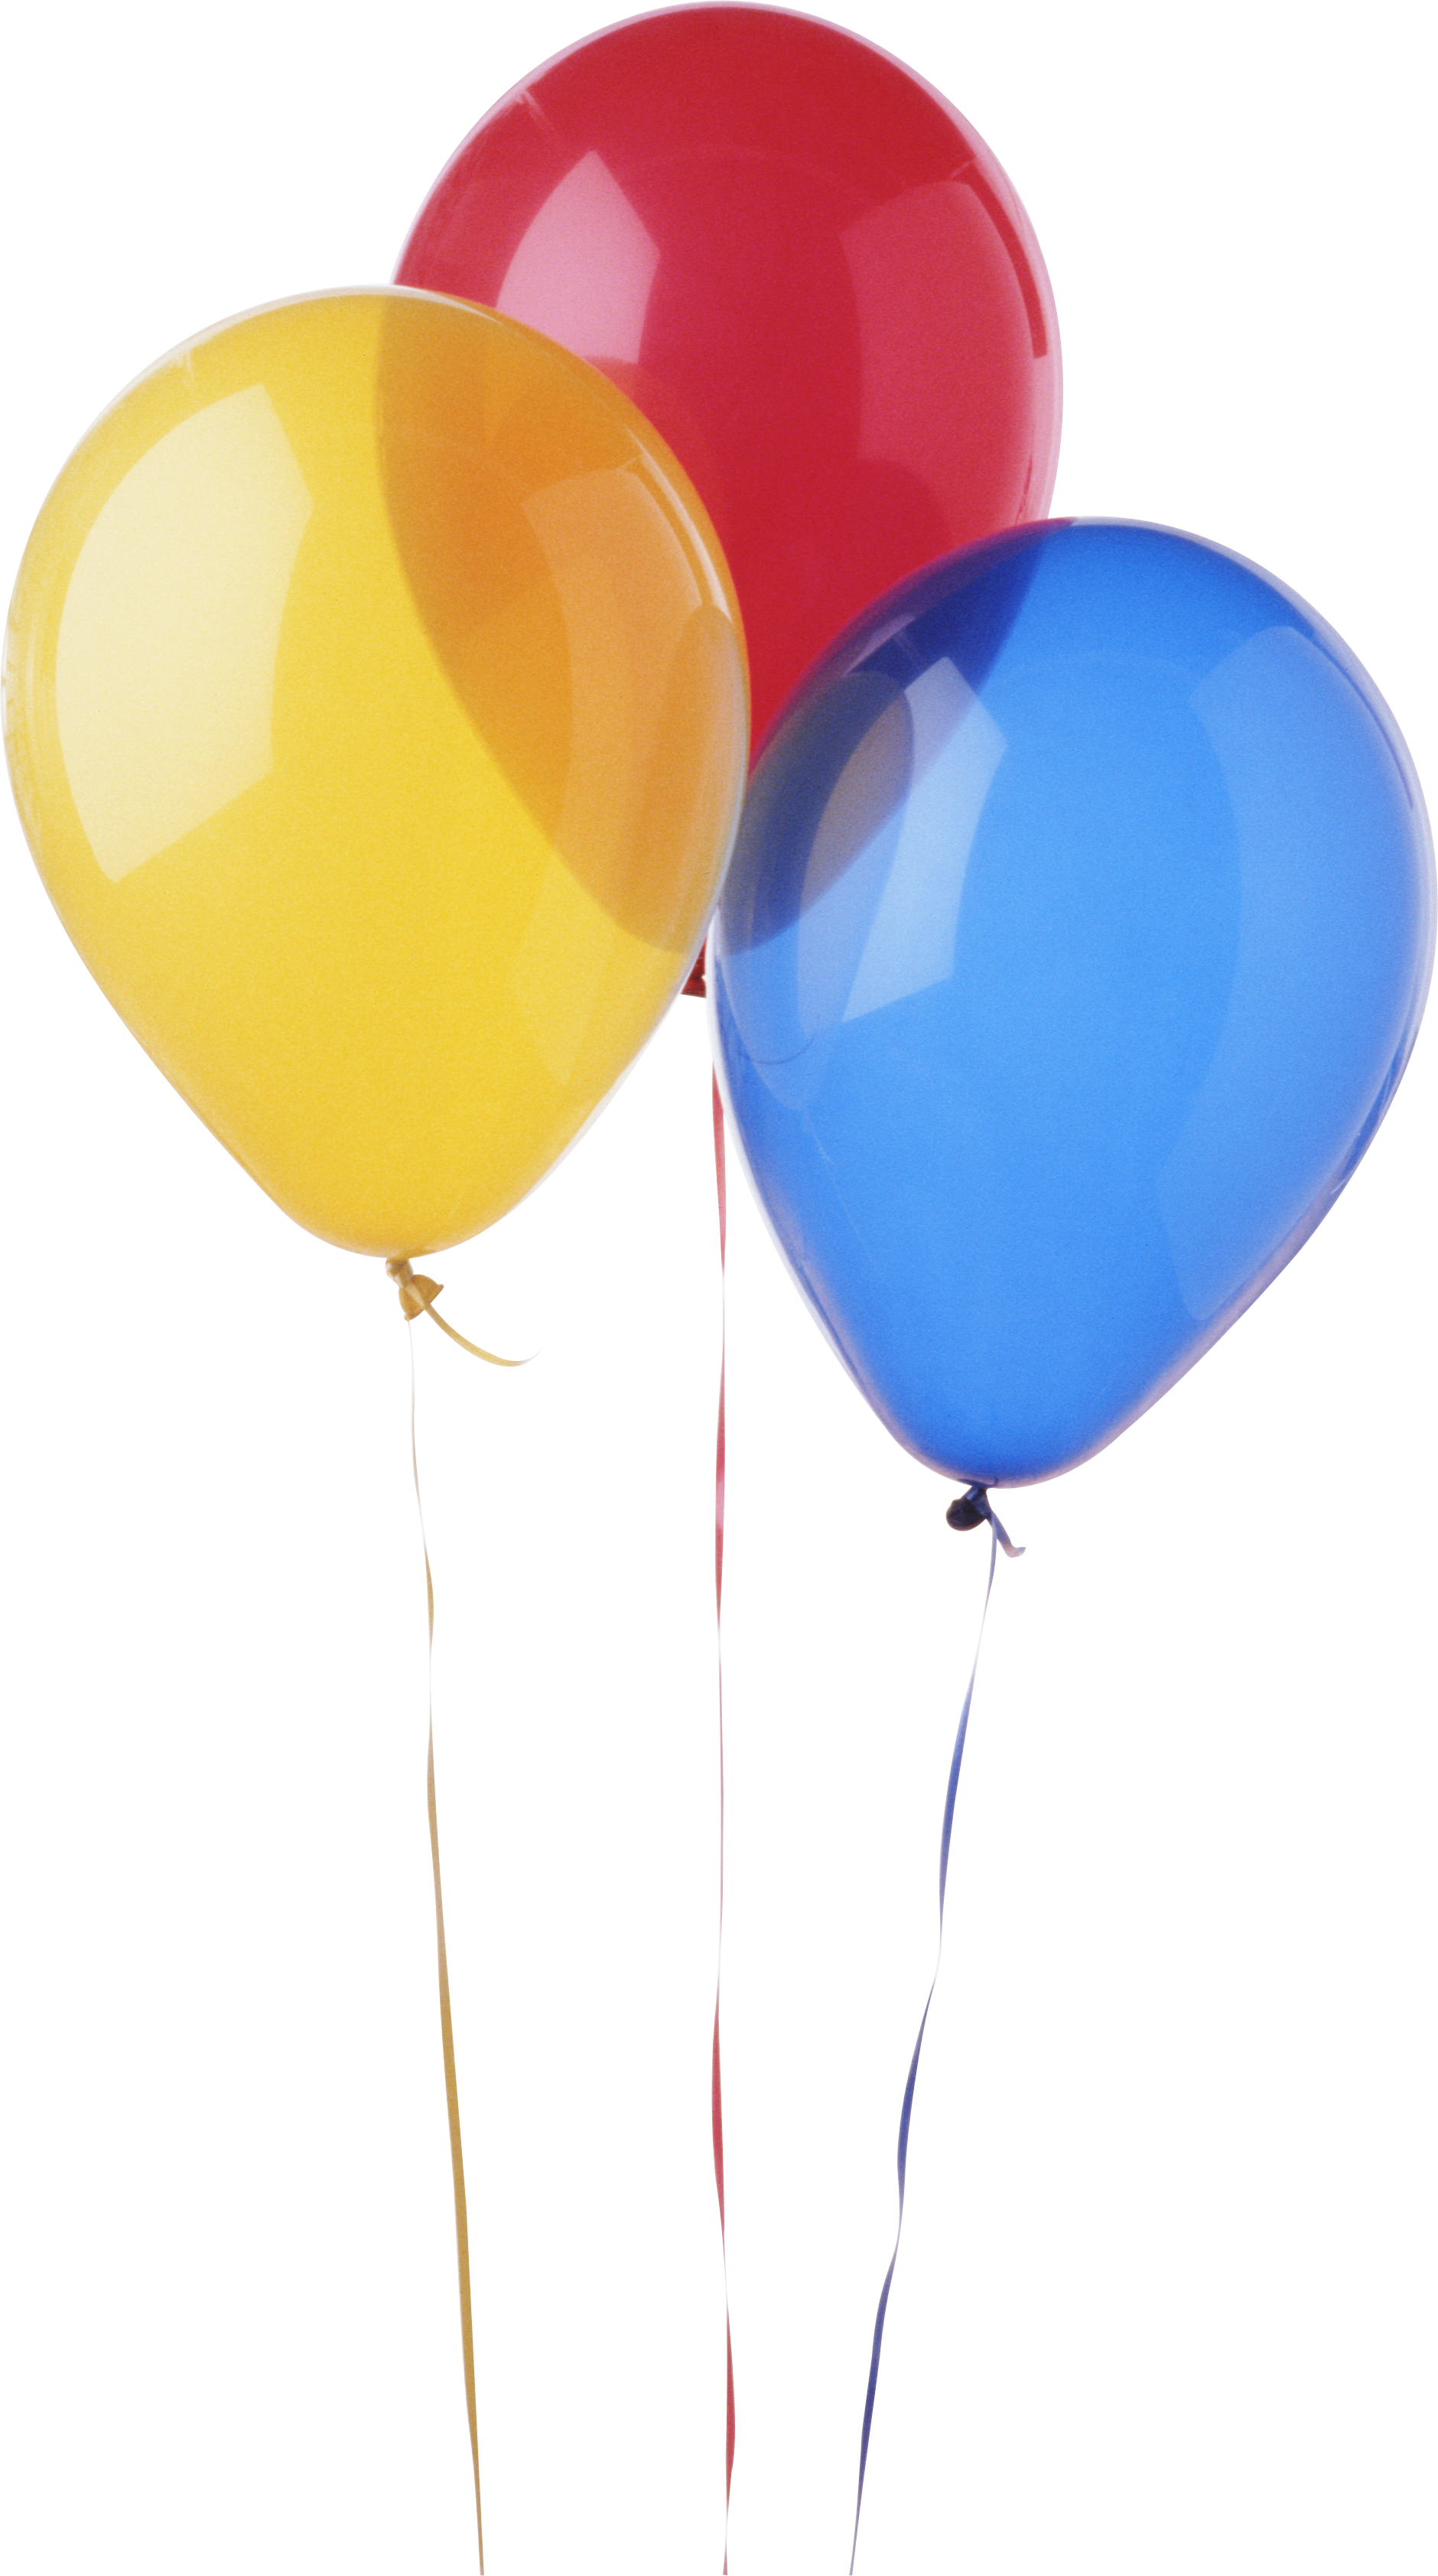 Real balloons png. Balloon images free picture